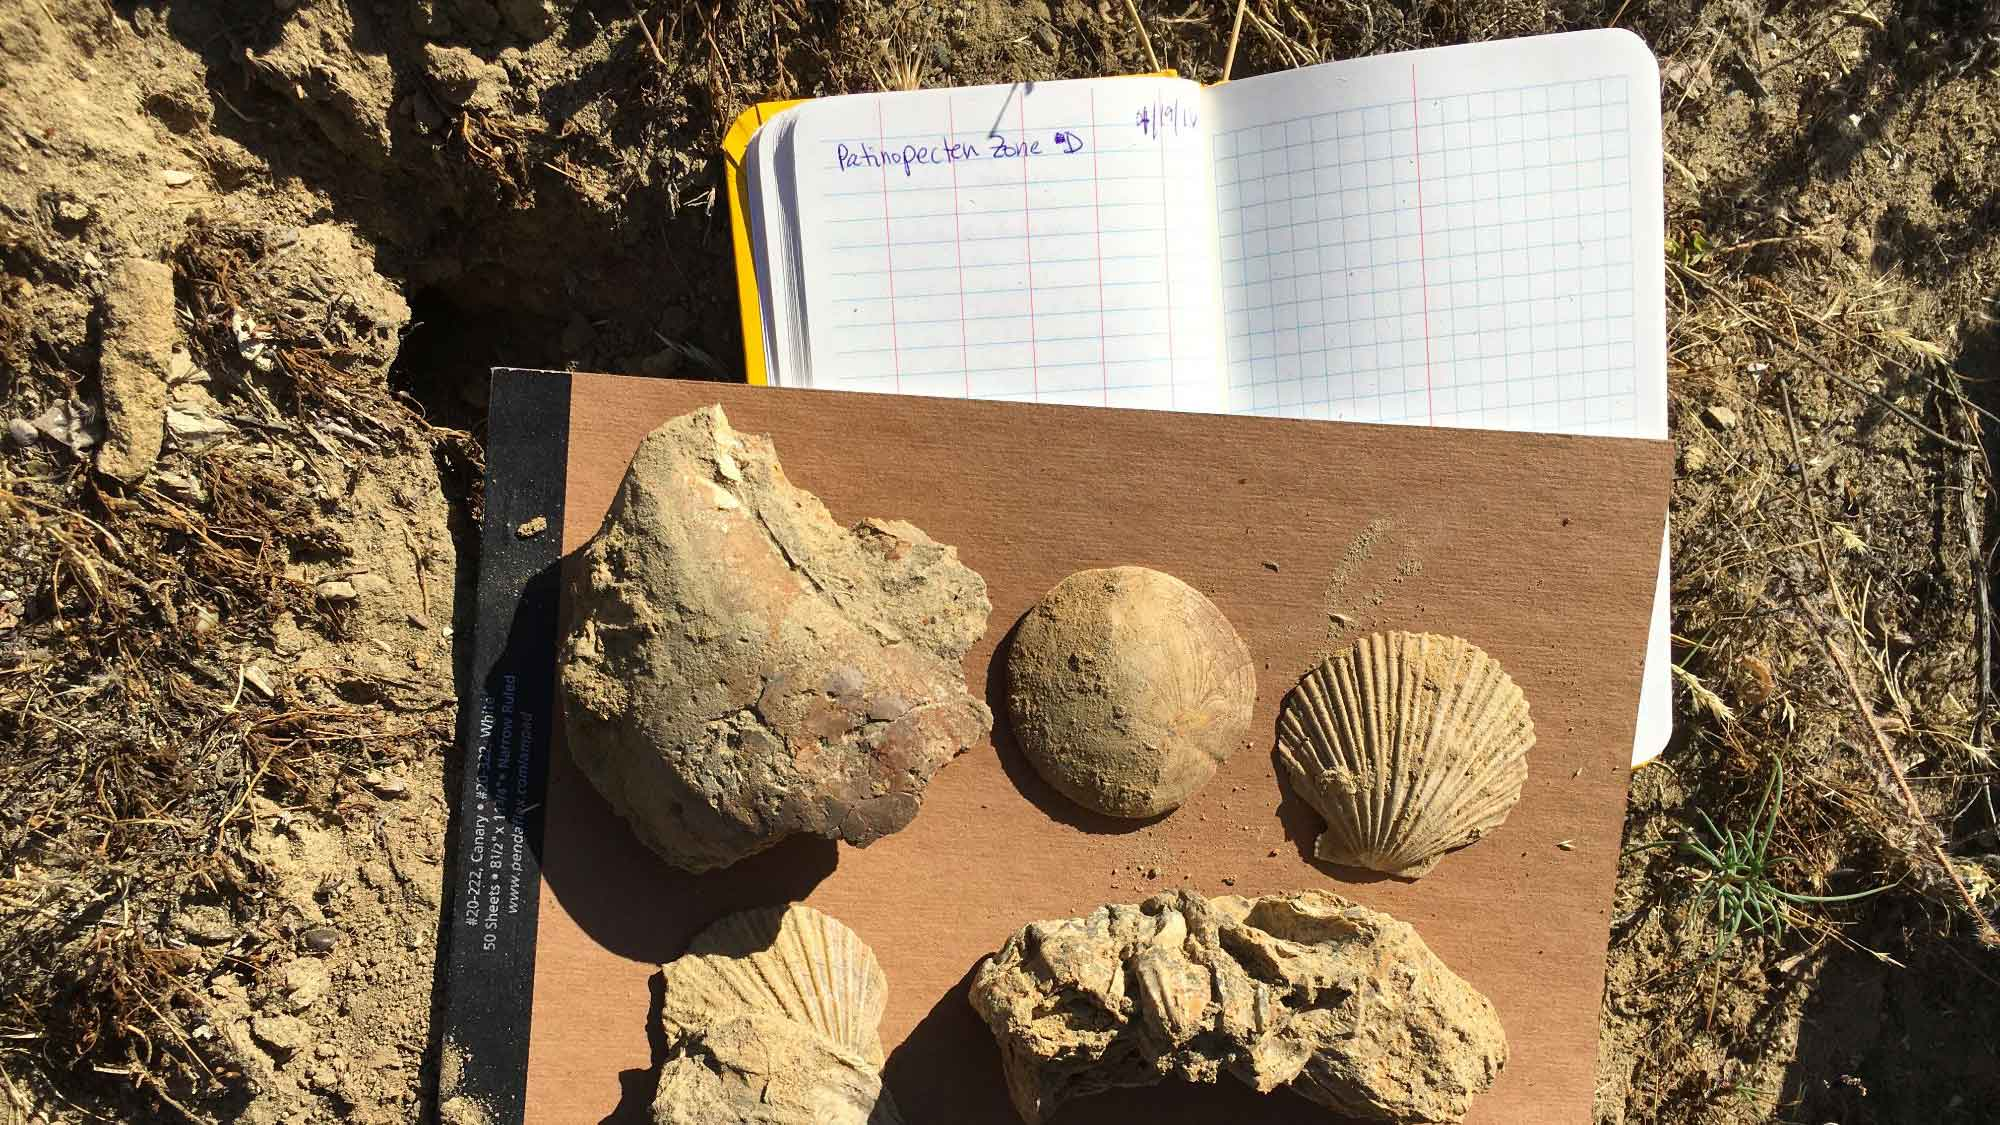 Field photograph of a notebook and five fossil specimens.